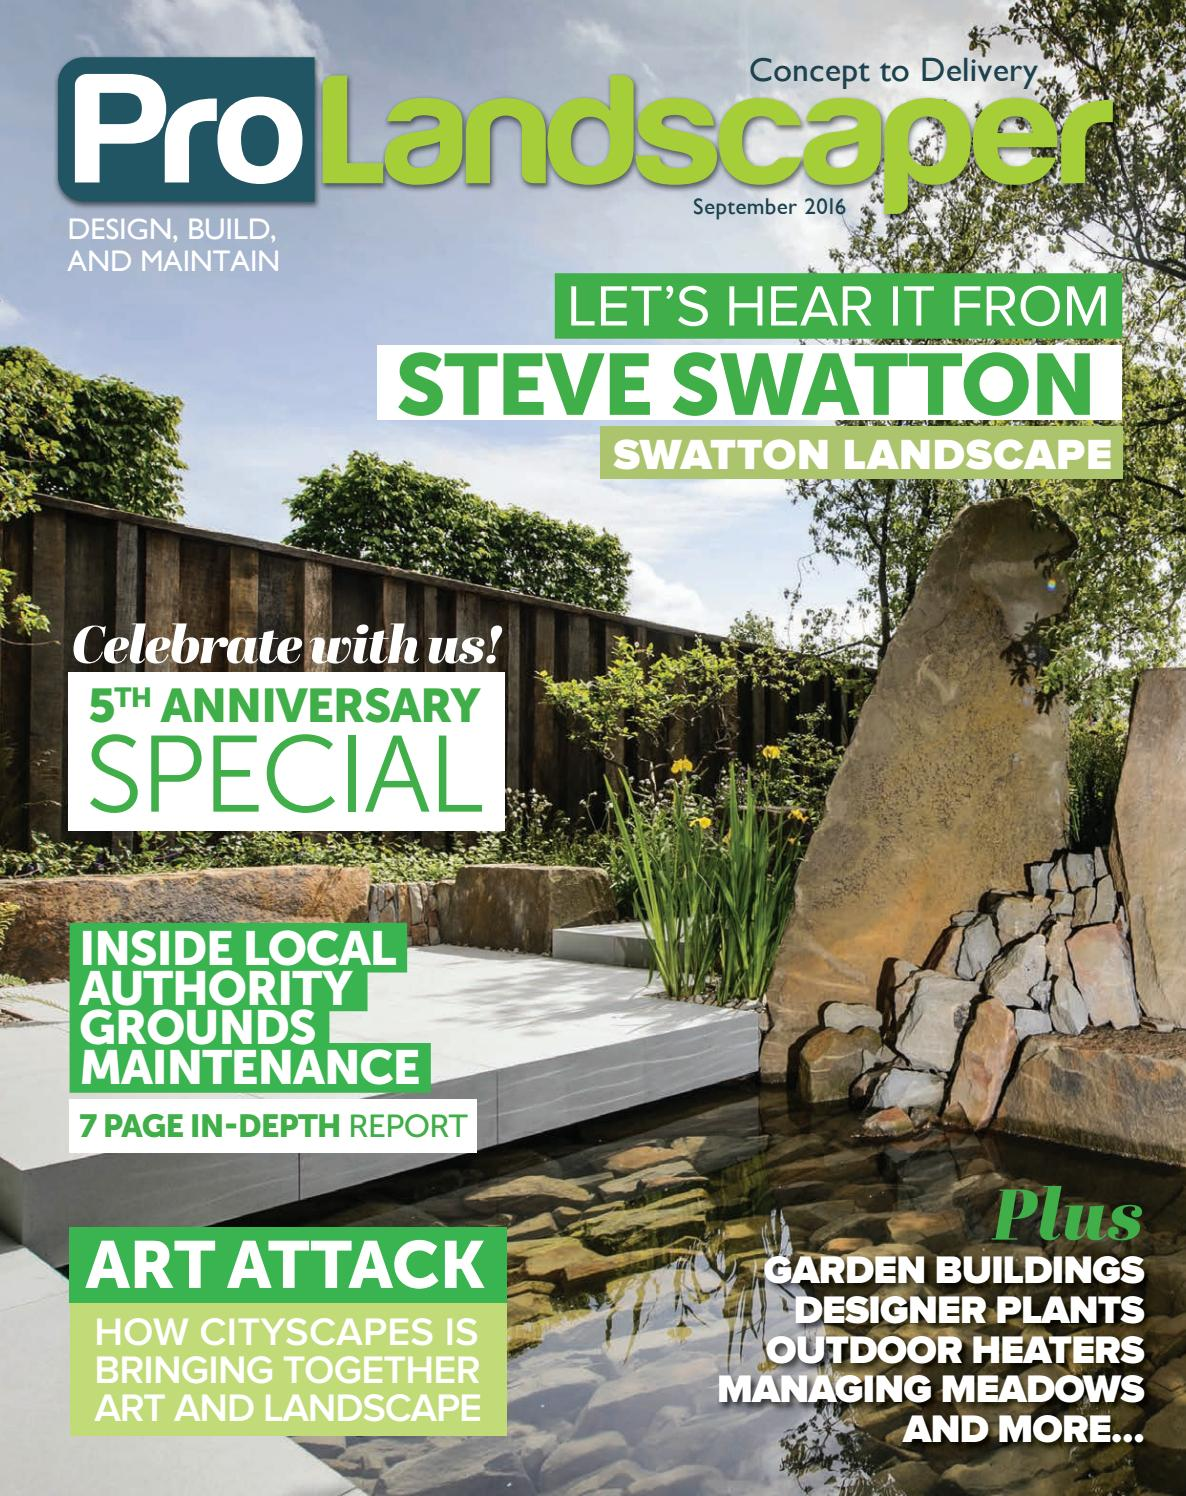 Pro Landscaper January 2016 By Eljays44 Issuu